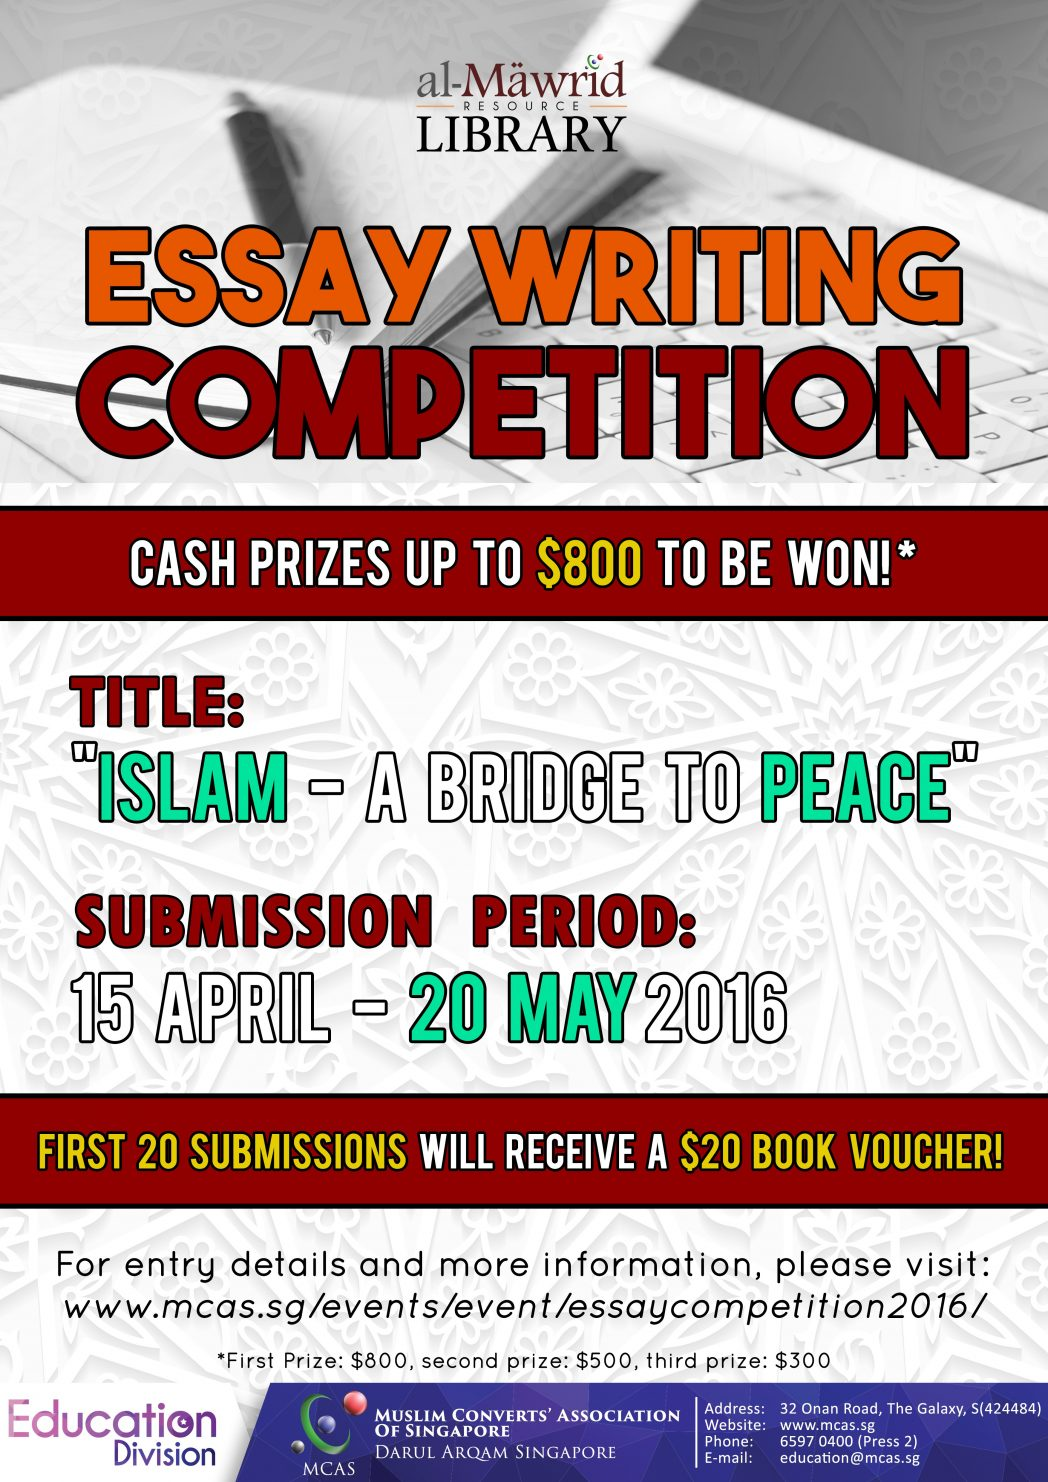 024 Buysay Com Ua Close Up Front Rank Firm In Australia To Writing Contest Criteria Version 2 Competition New Philippines Rubrics Mechanics Guidelines Tips For Nutrition 1048x1482 Incredible Essay International Competitions High School Students Rules By Essayhub Full